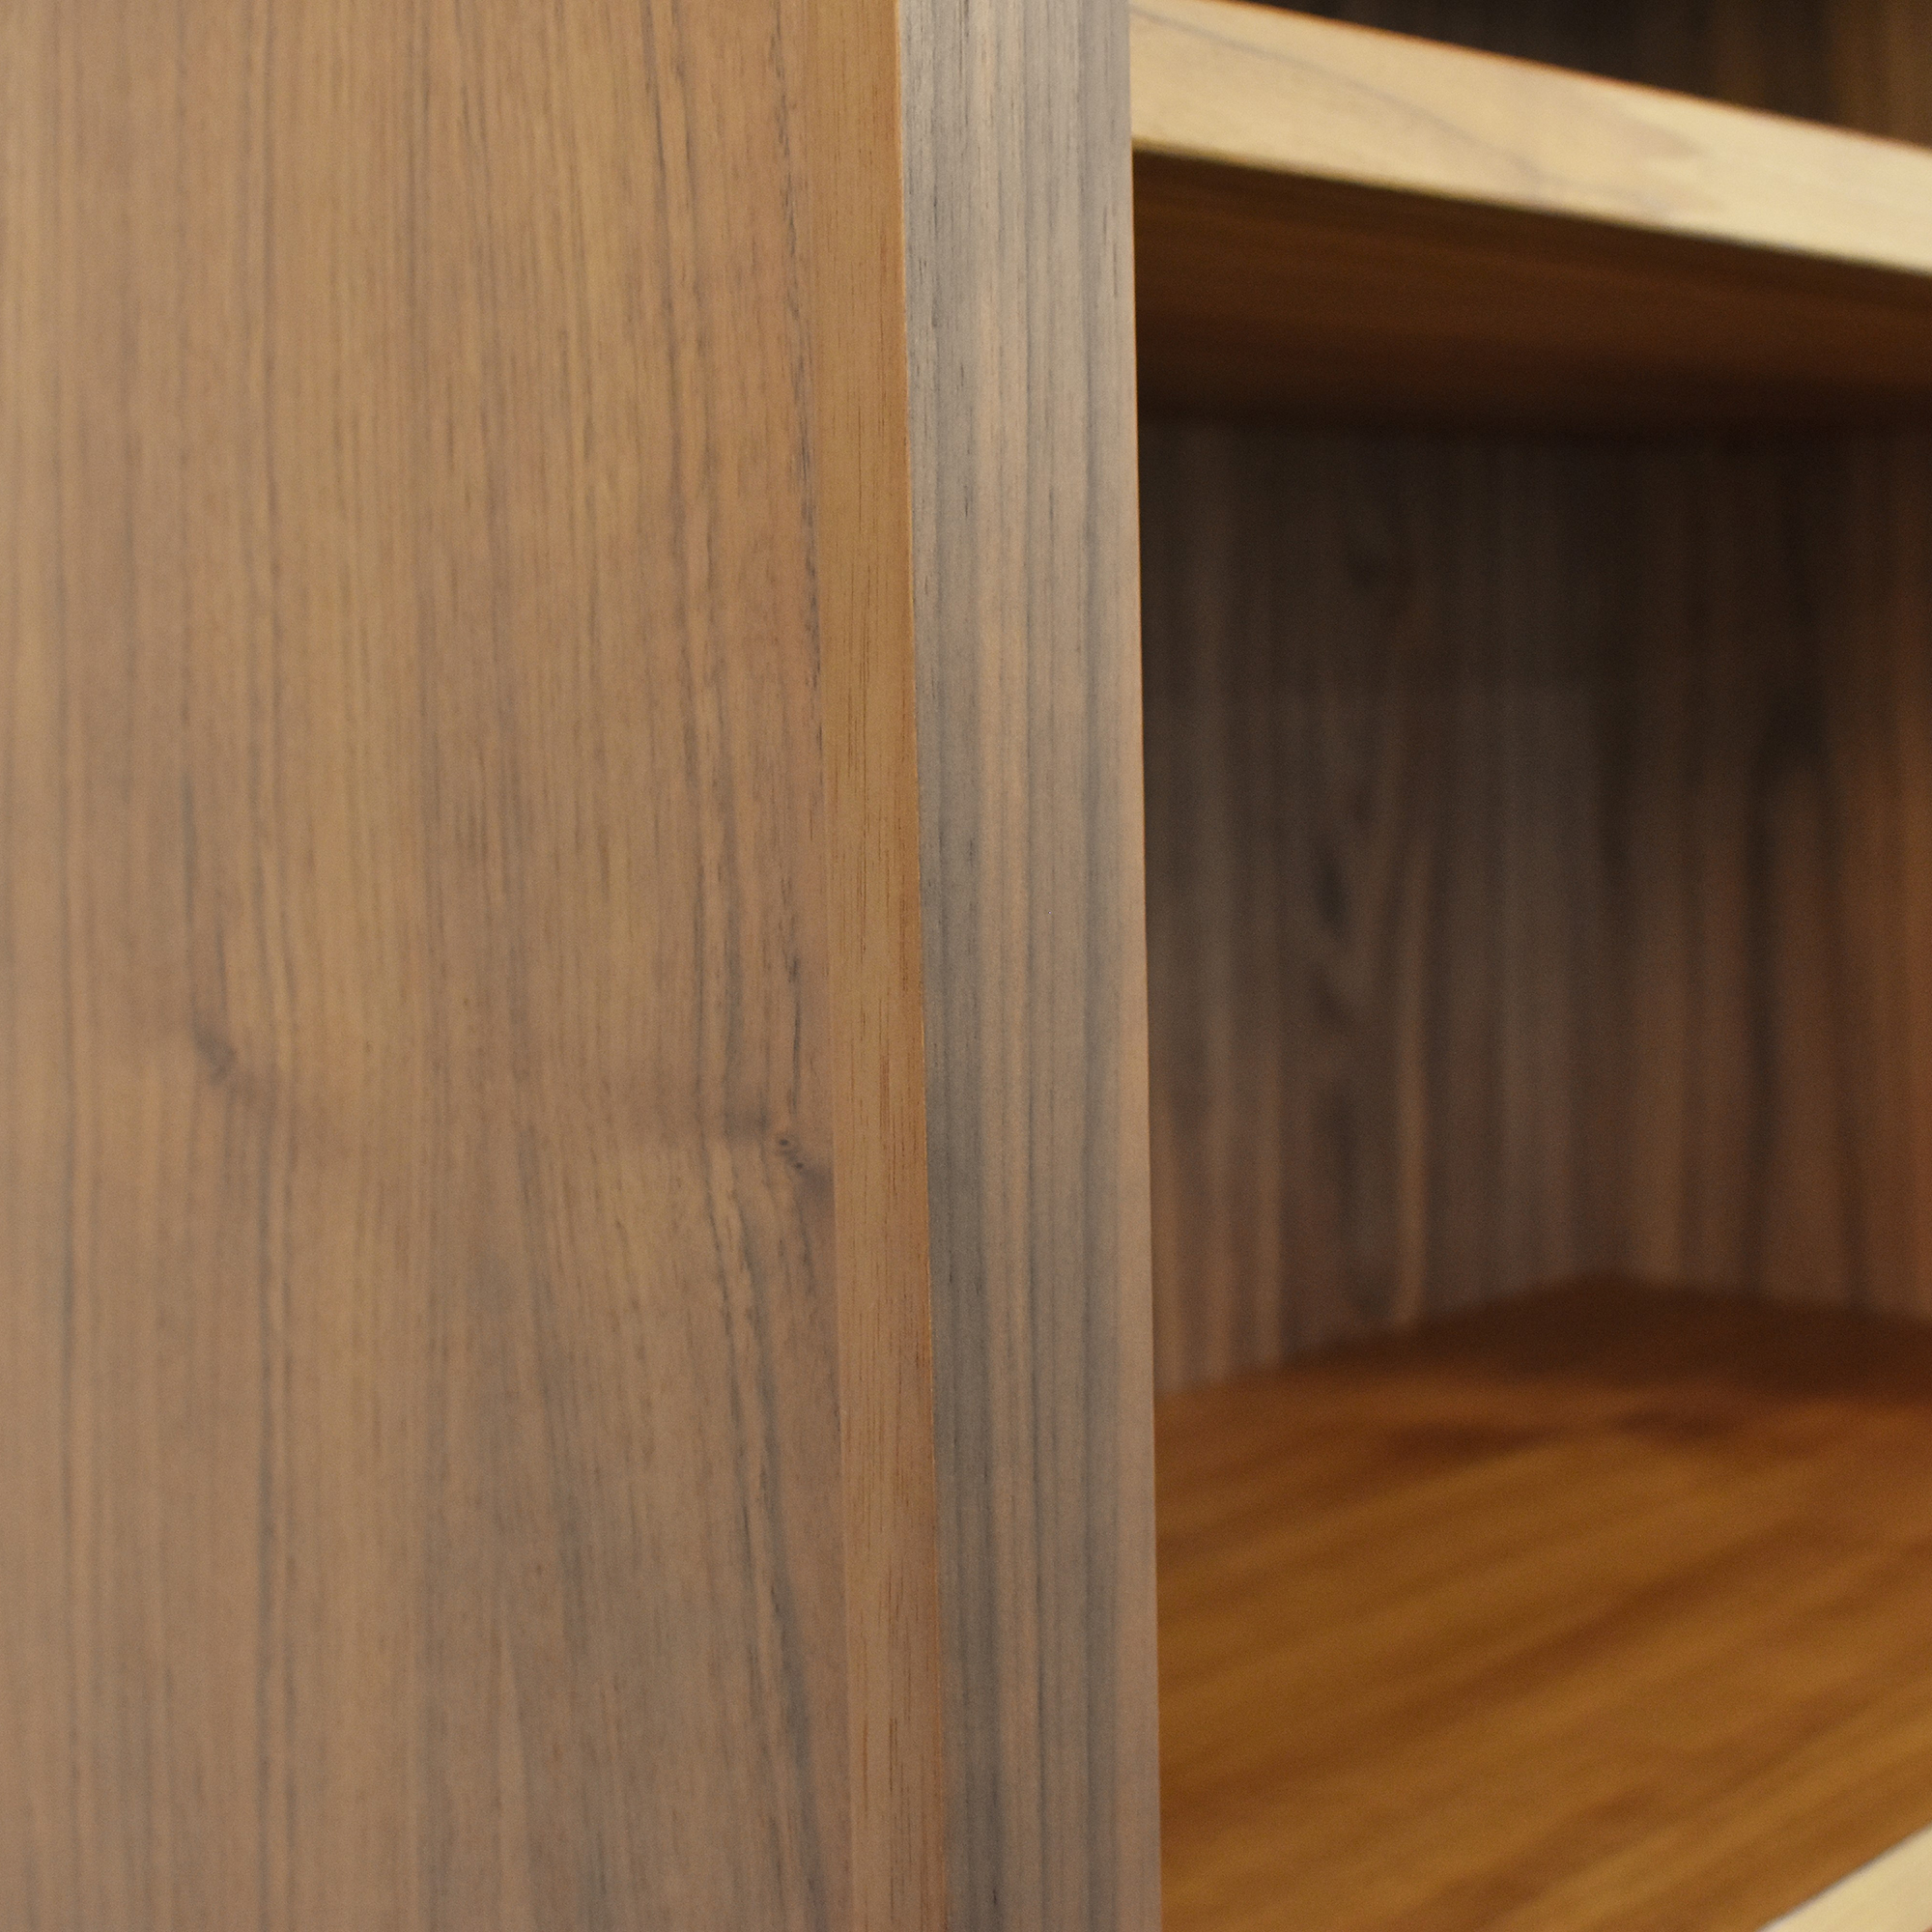 buy Room & Board Woodwind Bookcase with Drawers Room & Board Bookcases & Shelving